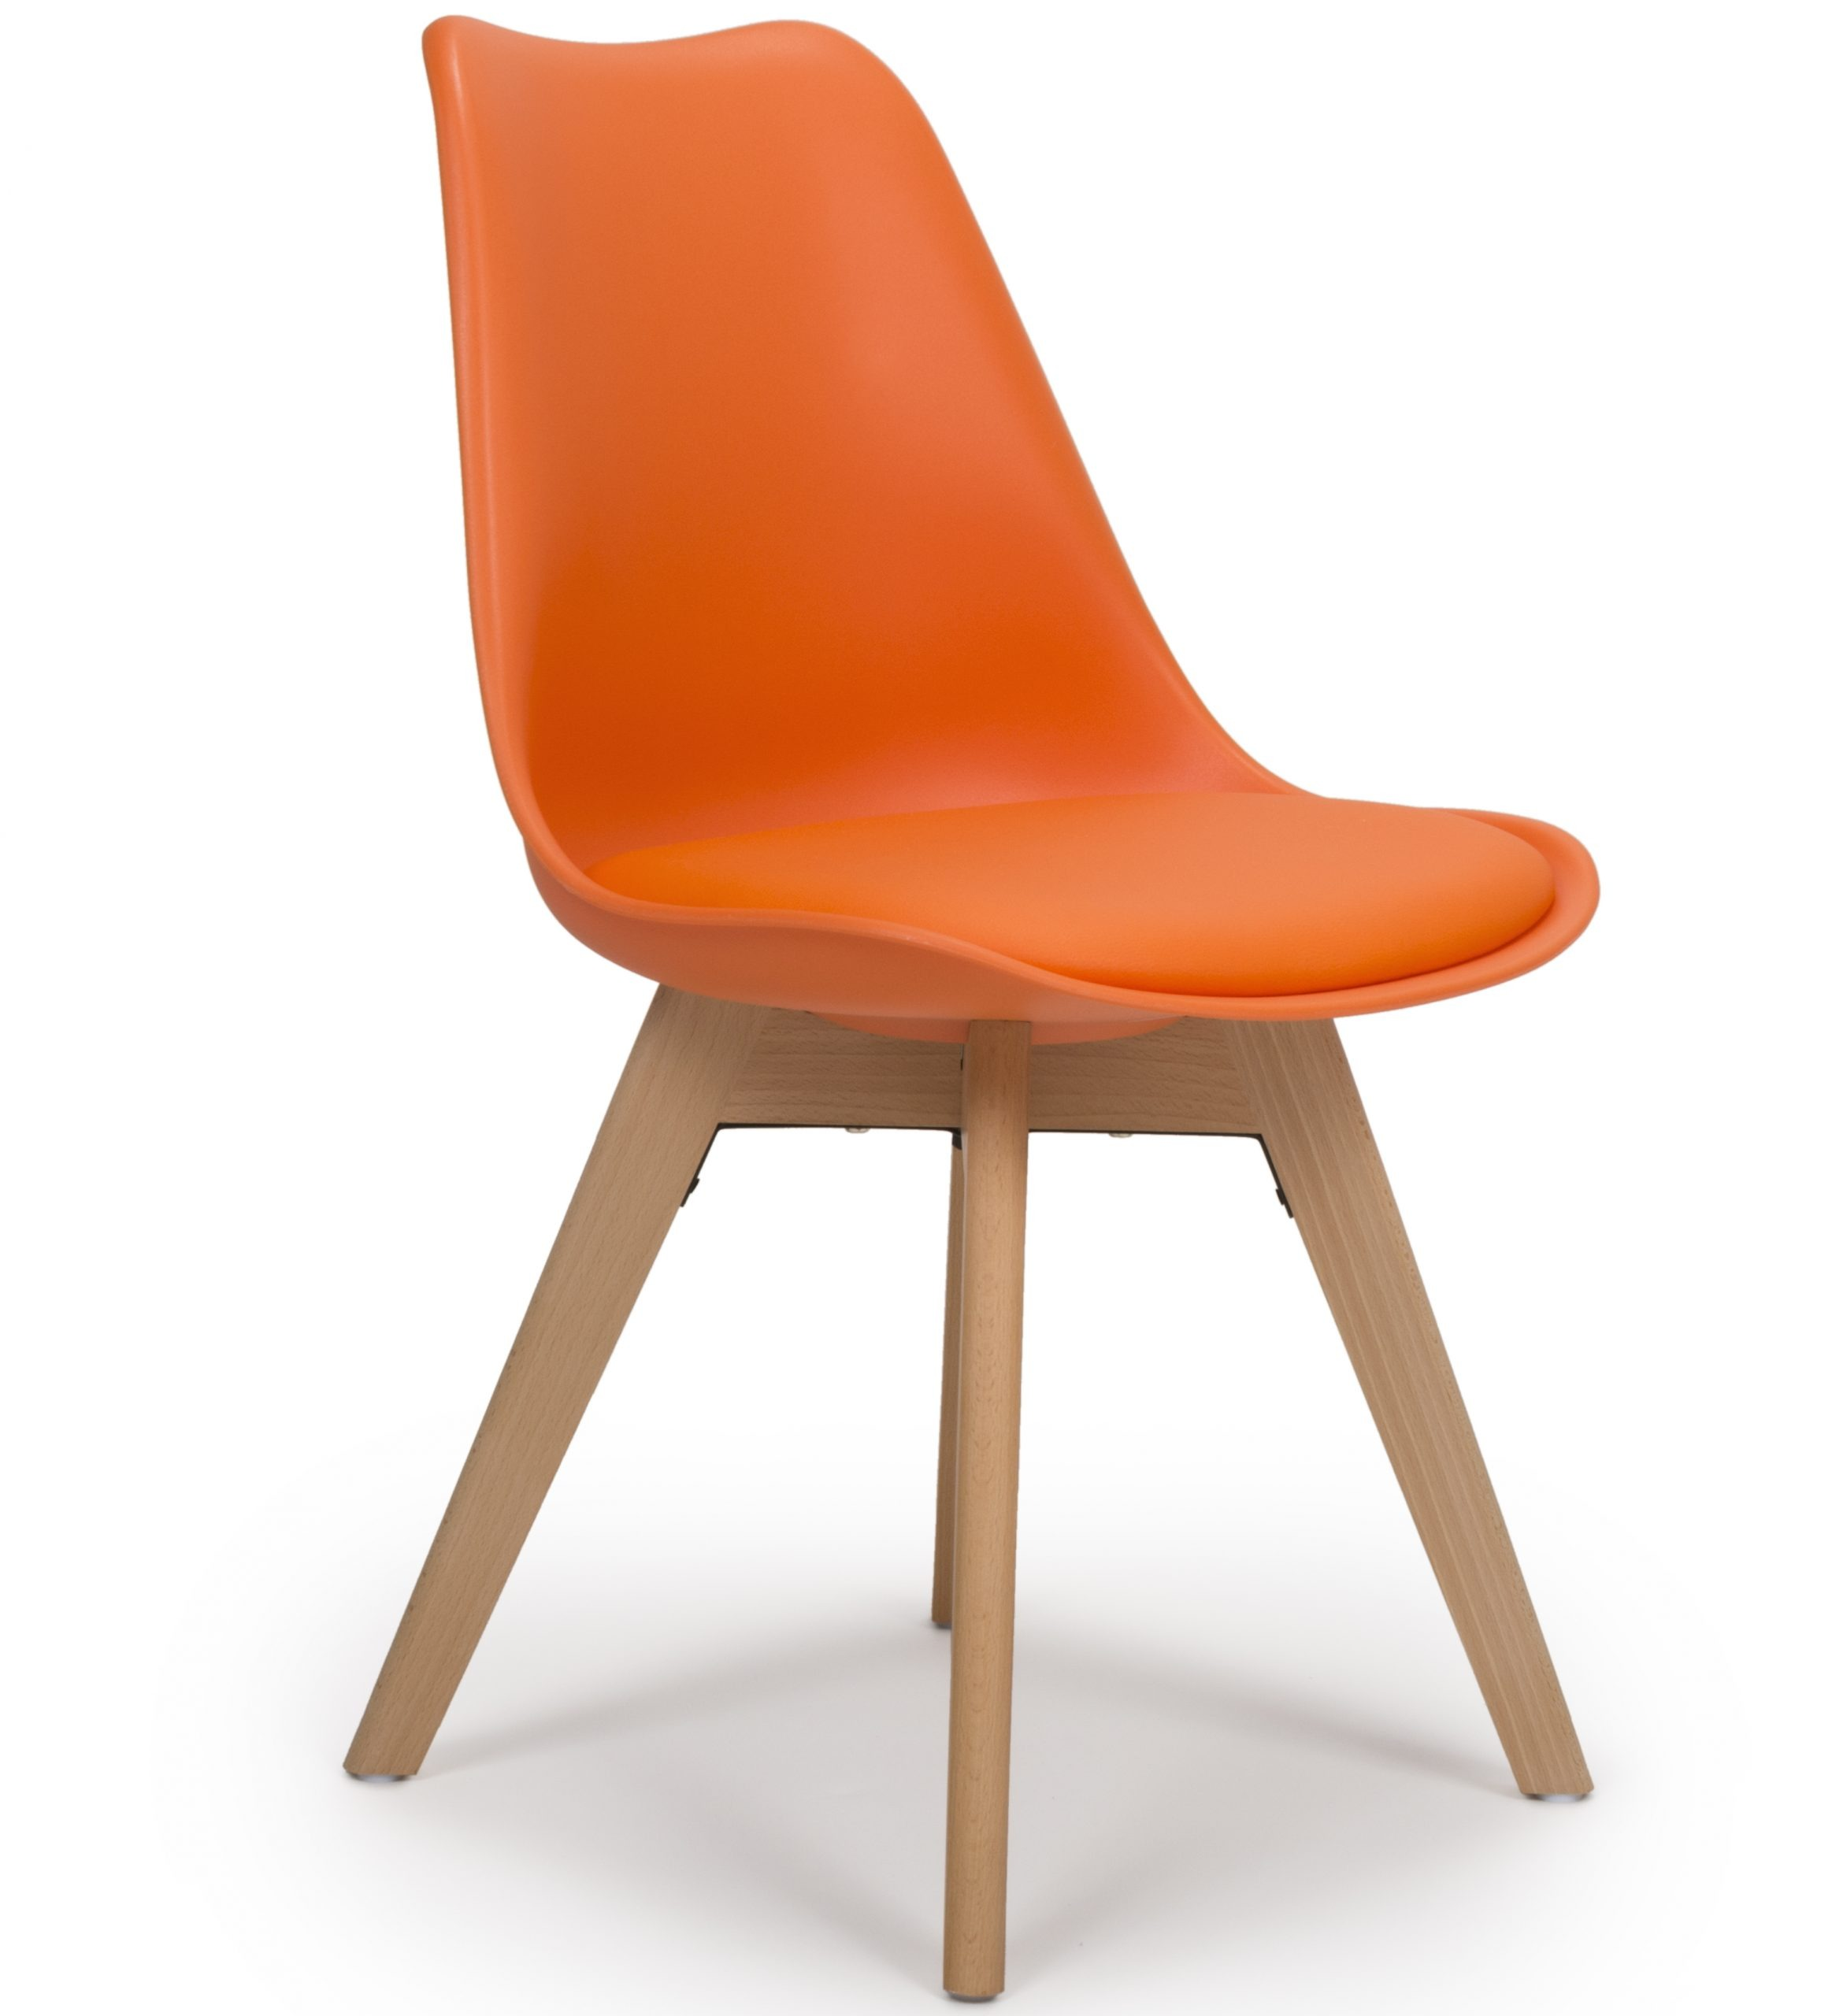 Urban Orange molded plastic dining chair